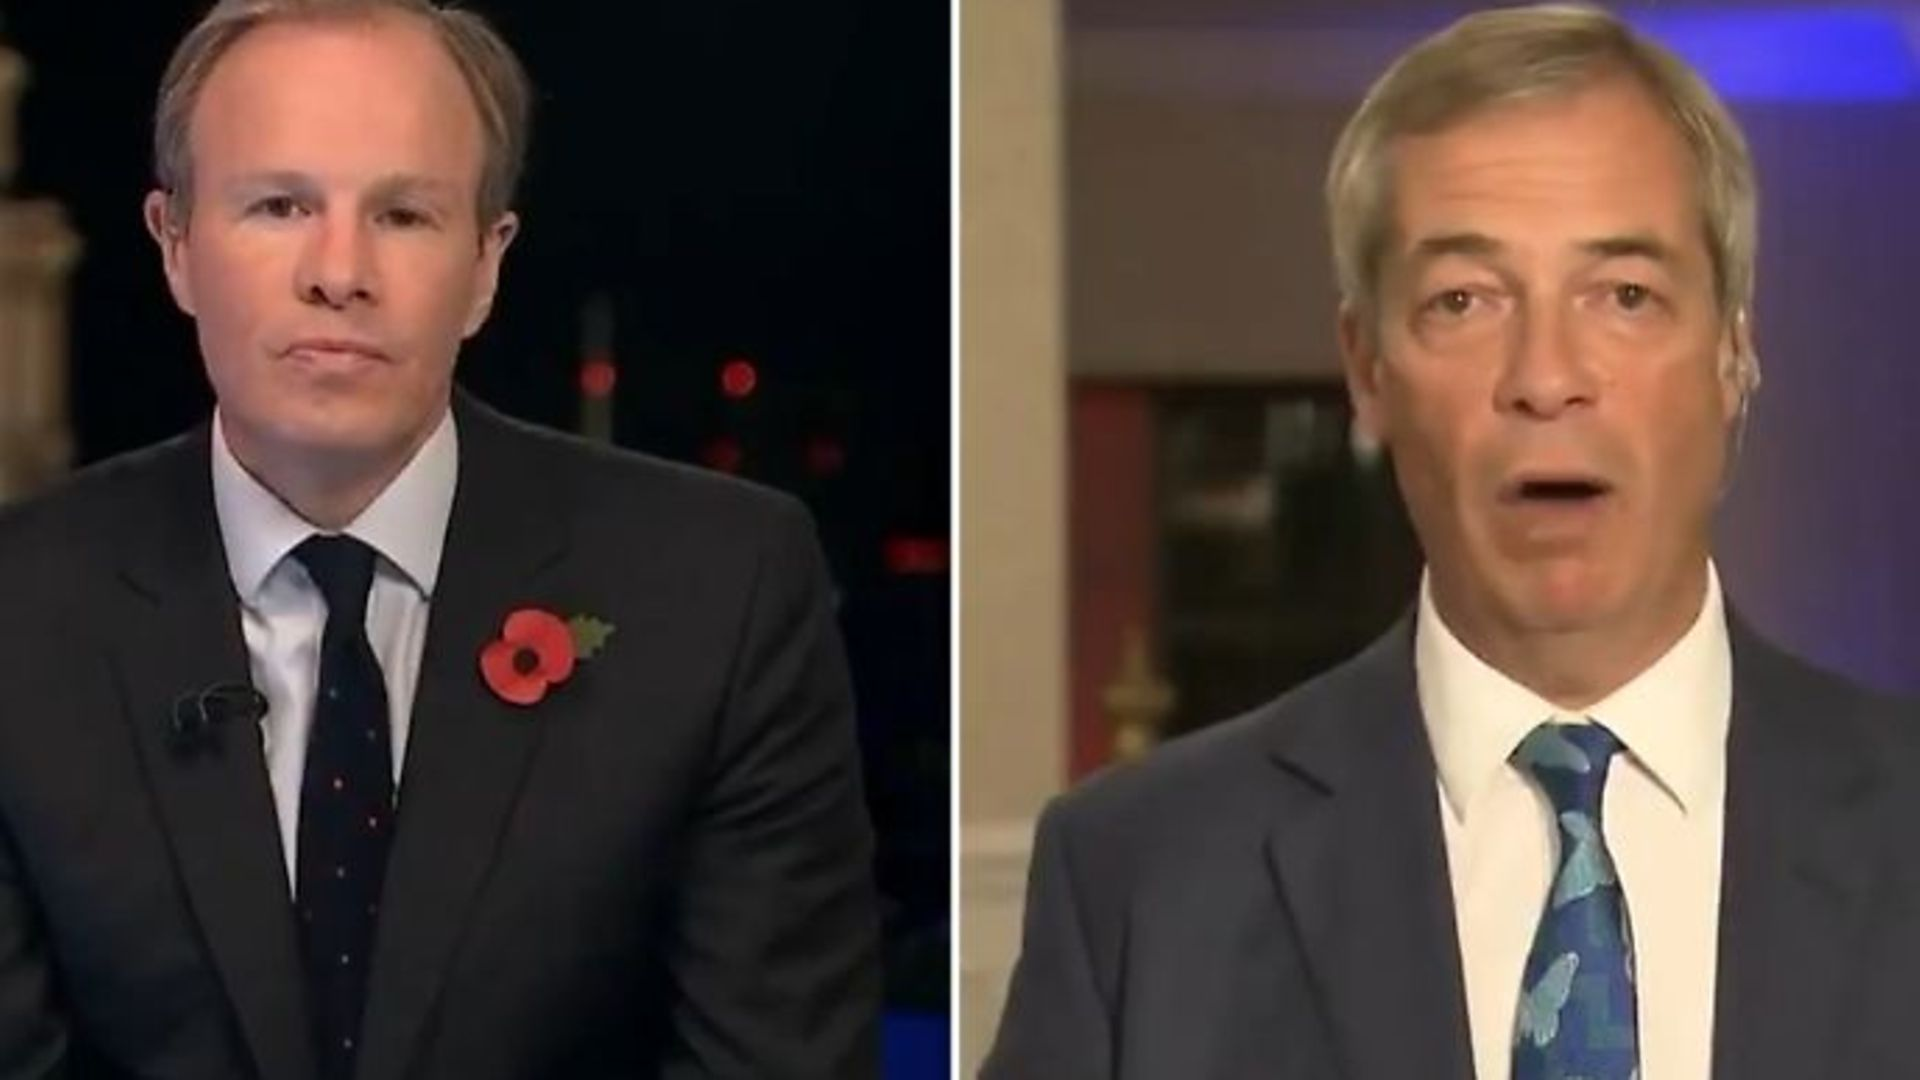 ITV's Tom Bradby (L) and Nigel Farage during an interview - Credit: Twitter